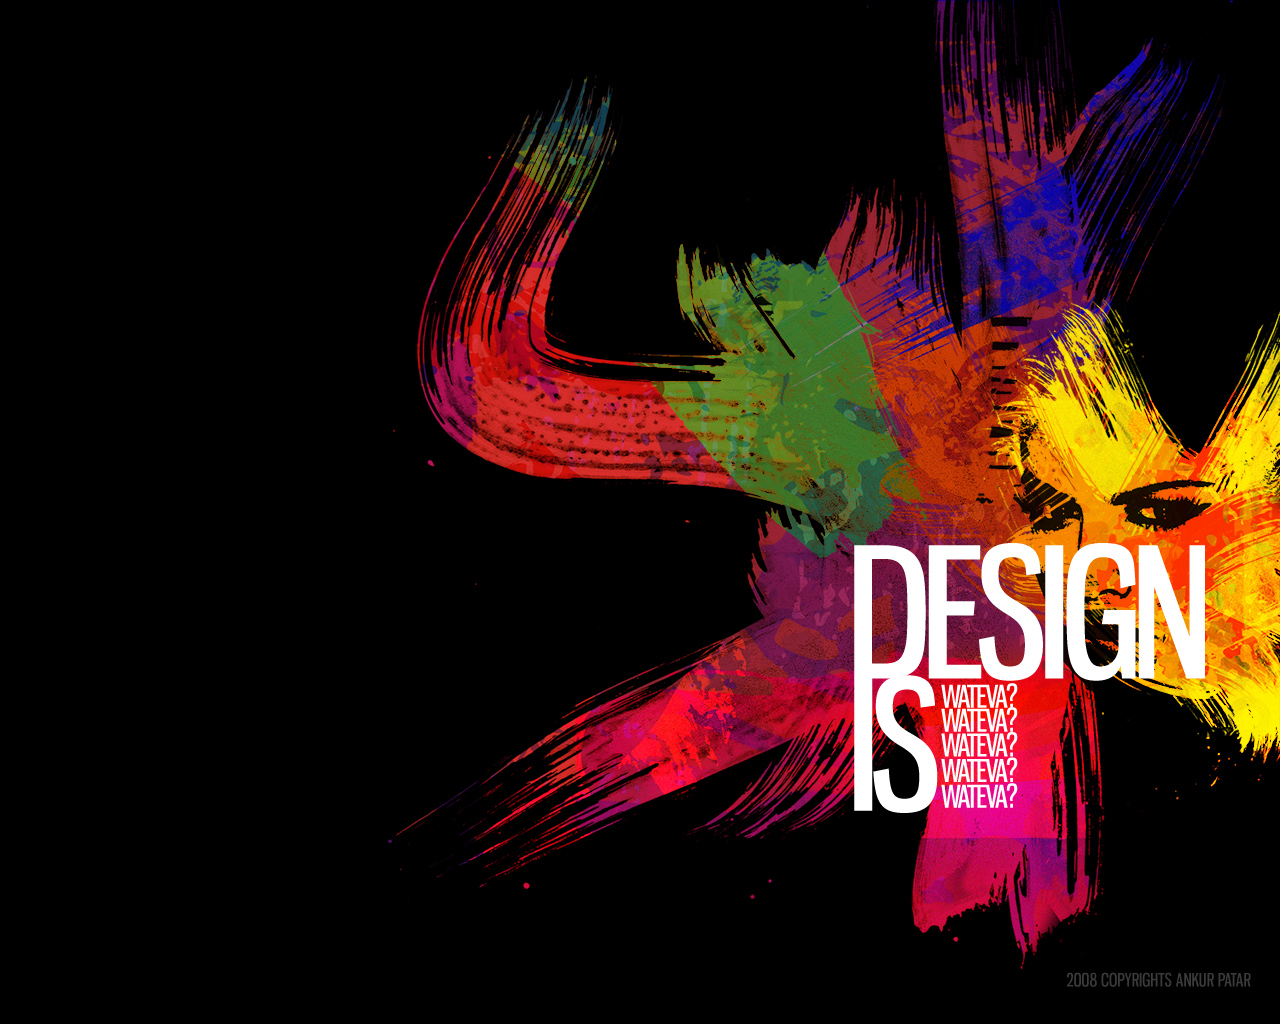 11 Graphic Design Wallpaper Images